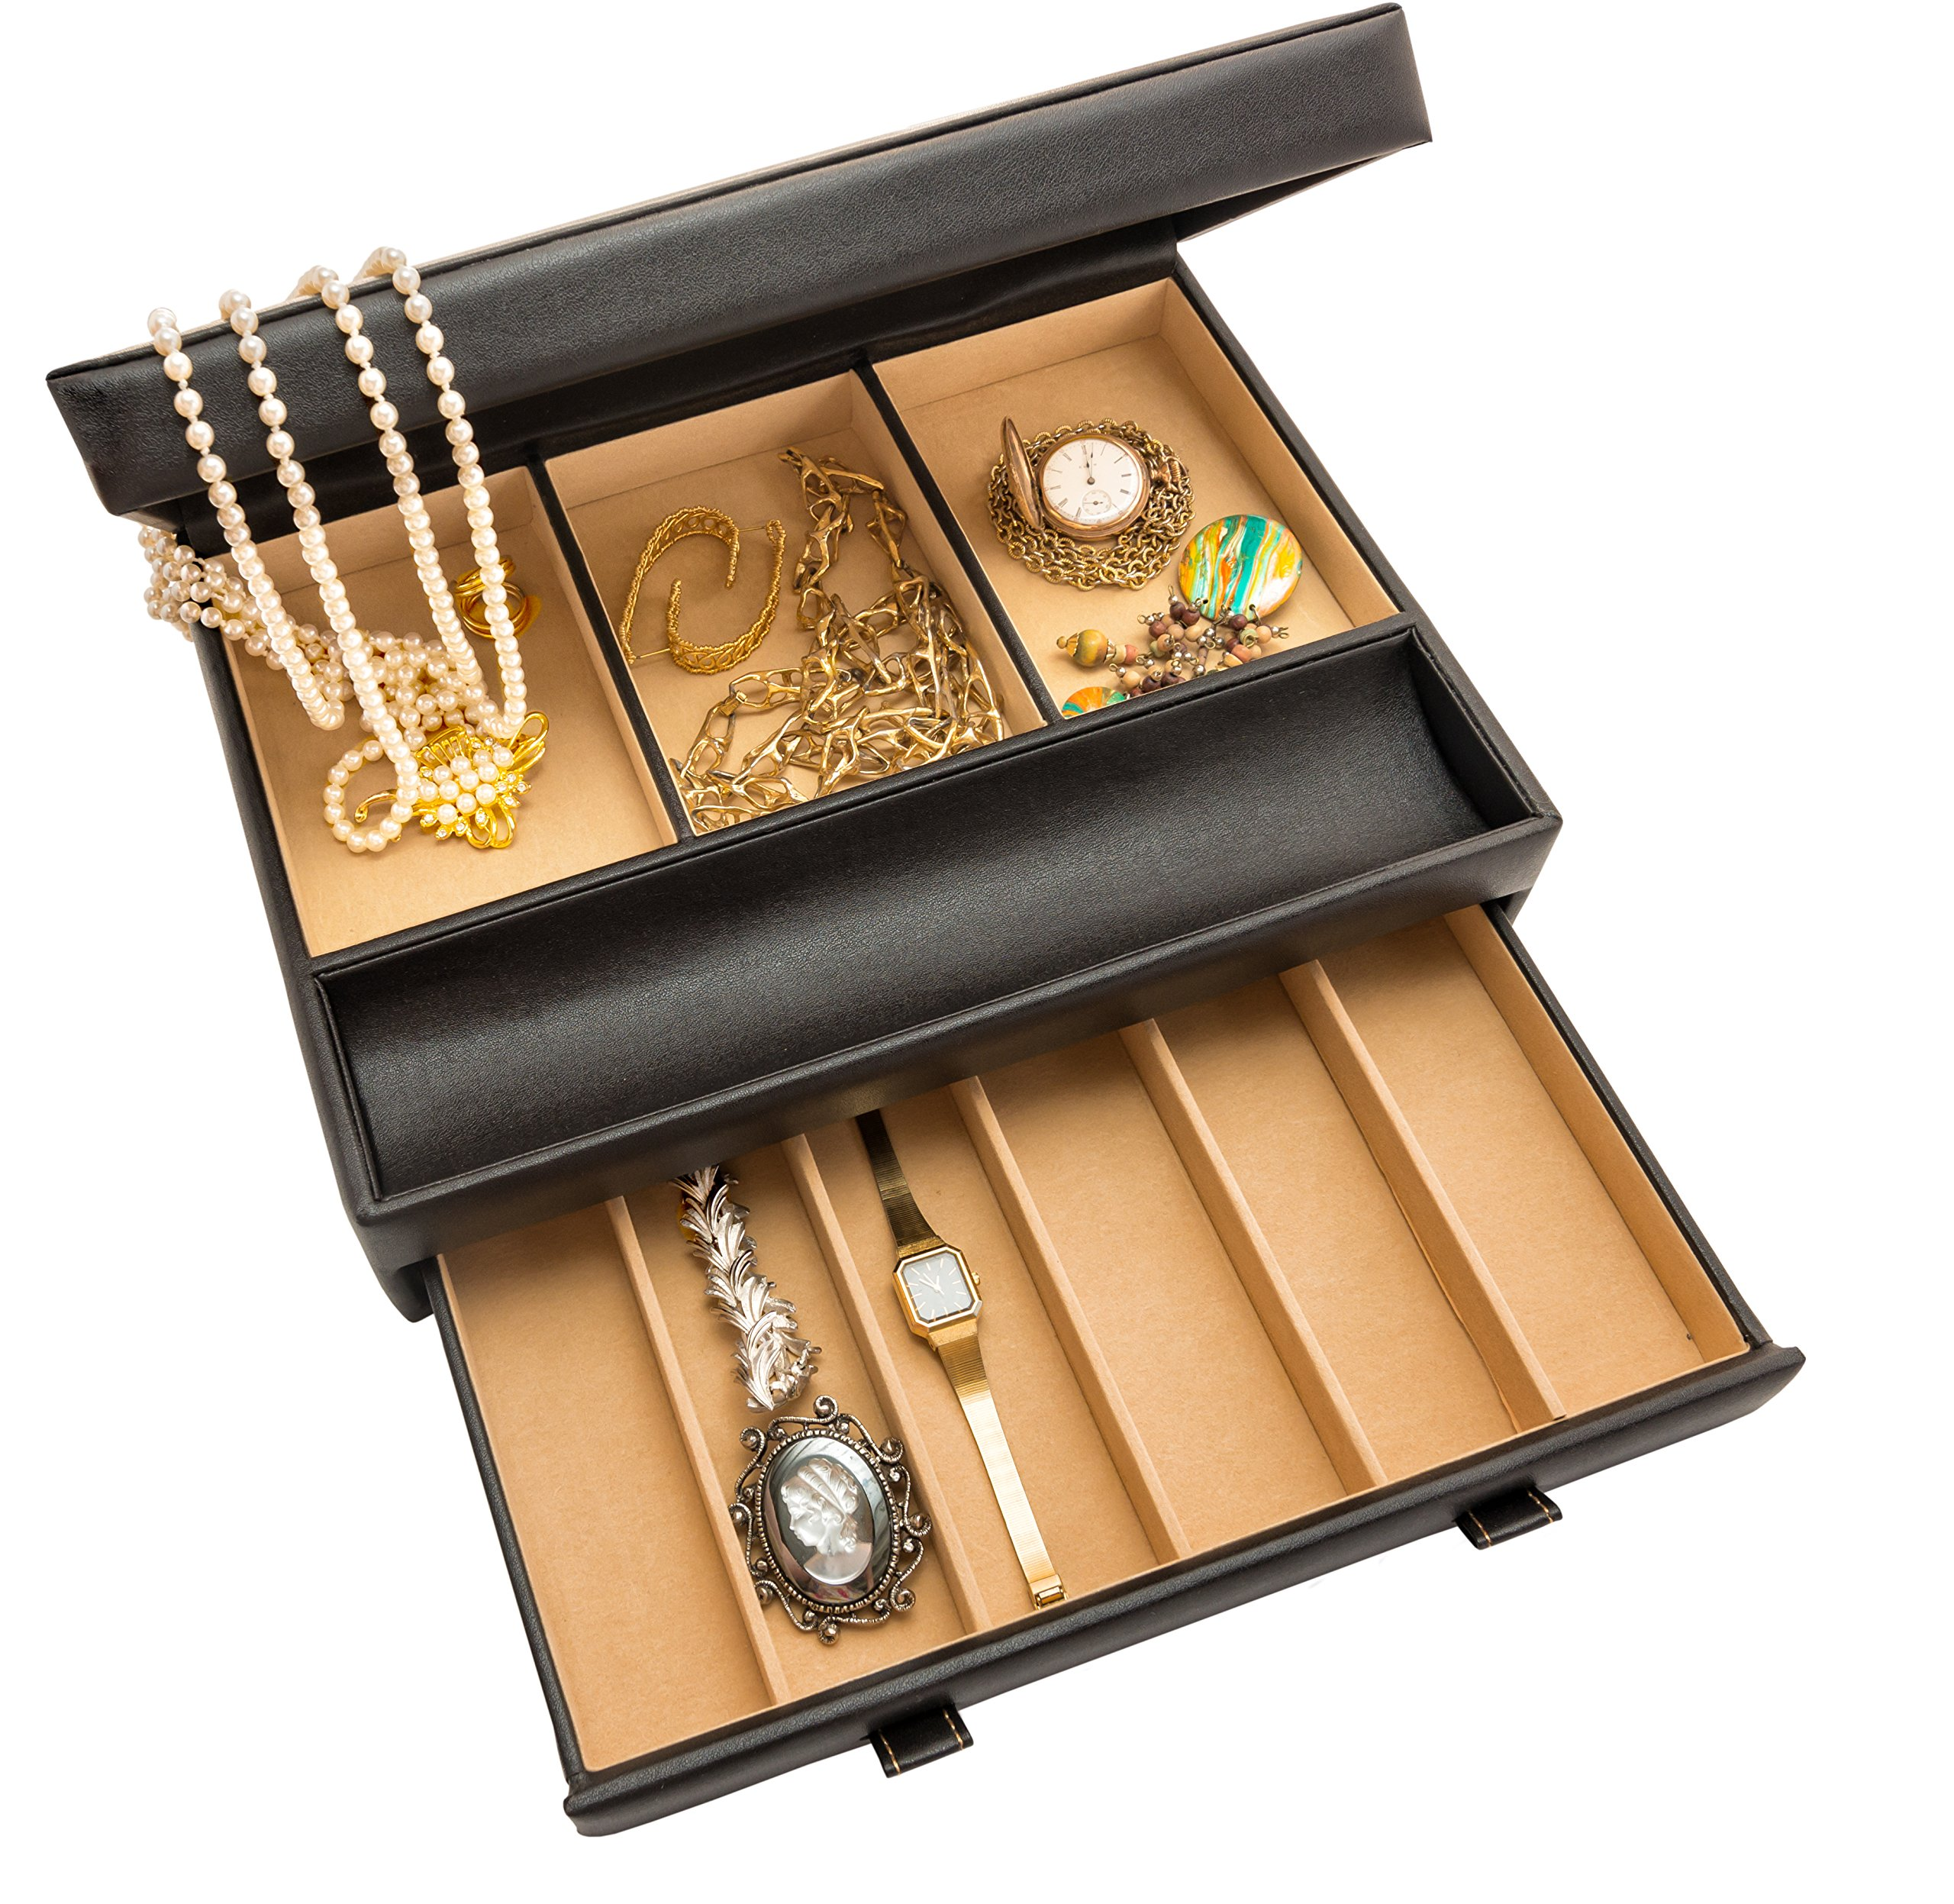 Stock Your Home Luxury Mens Dresser Valet Organizer for Watches